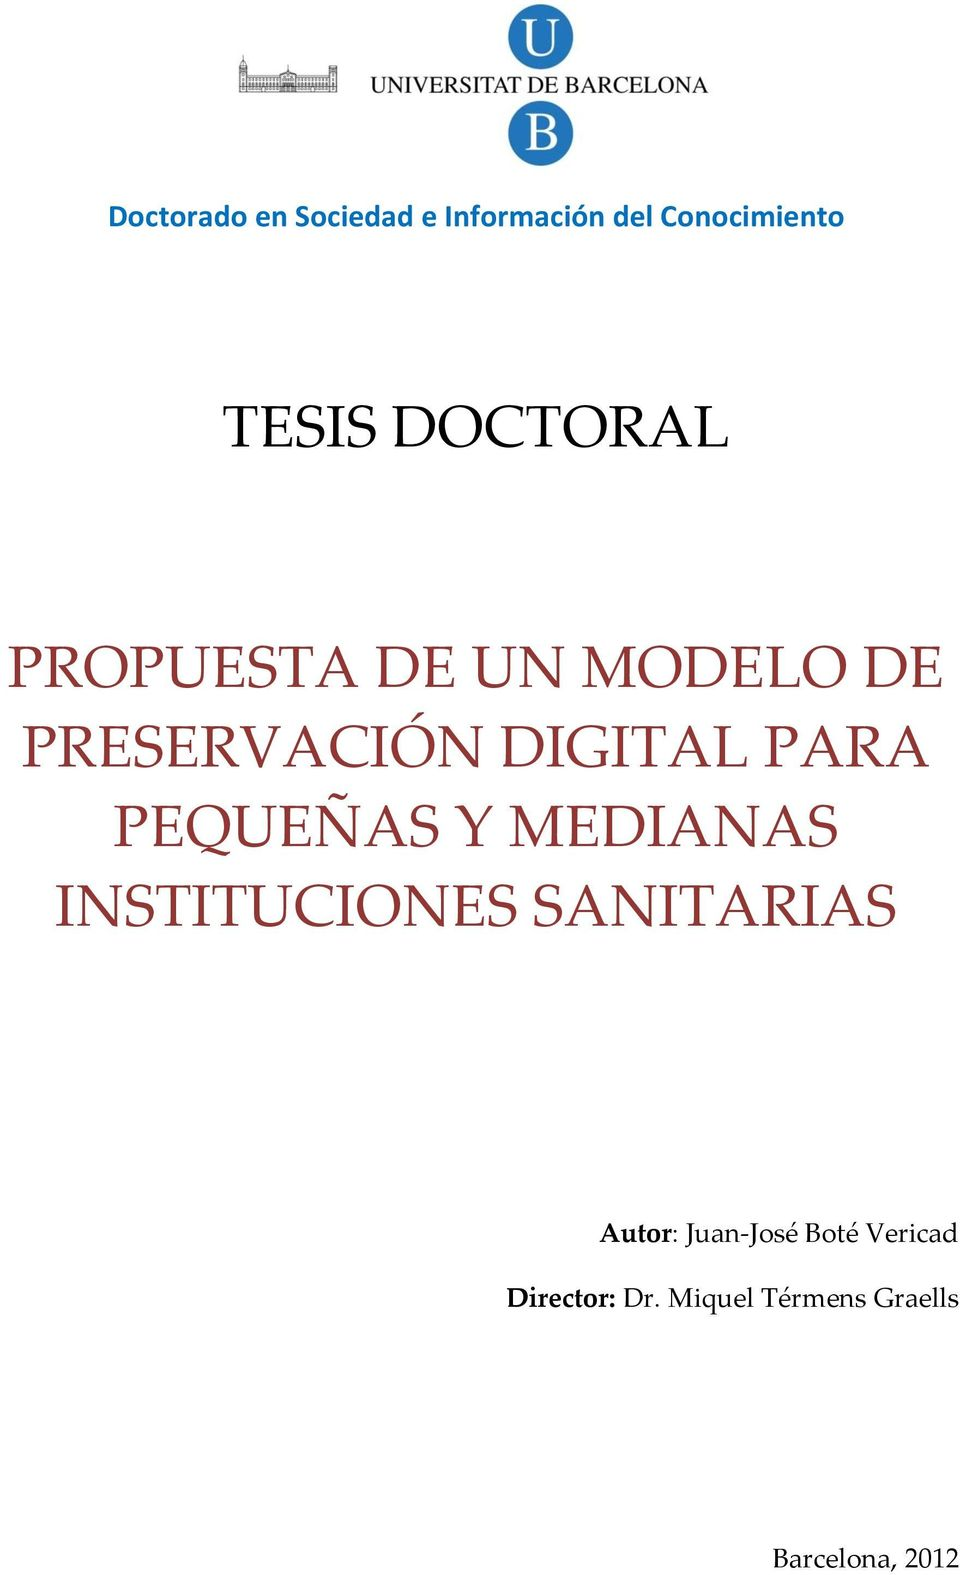 doctoral thesis director